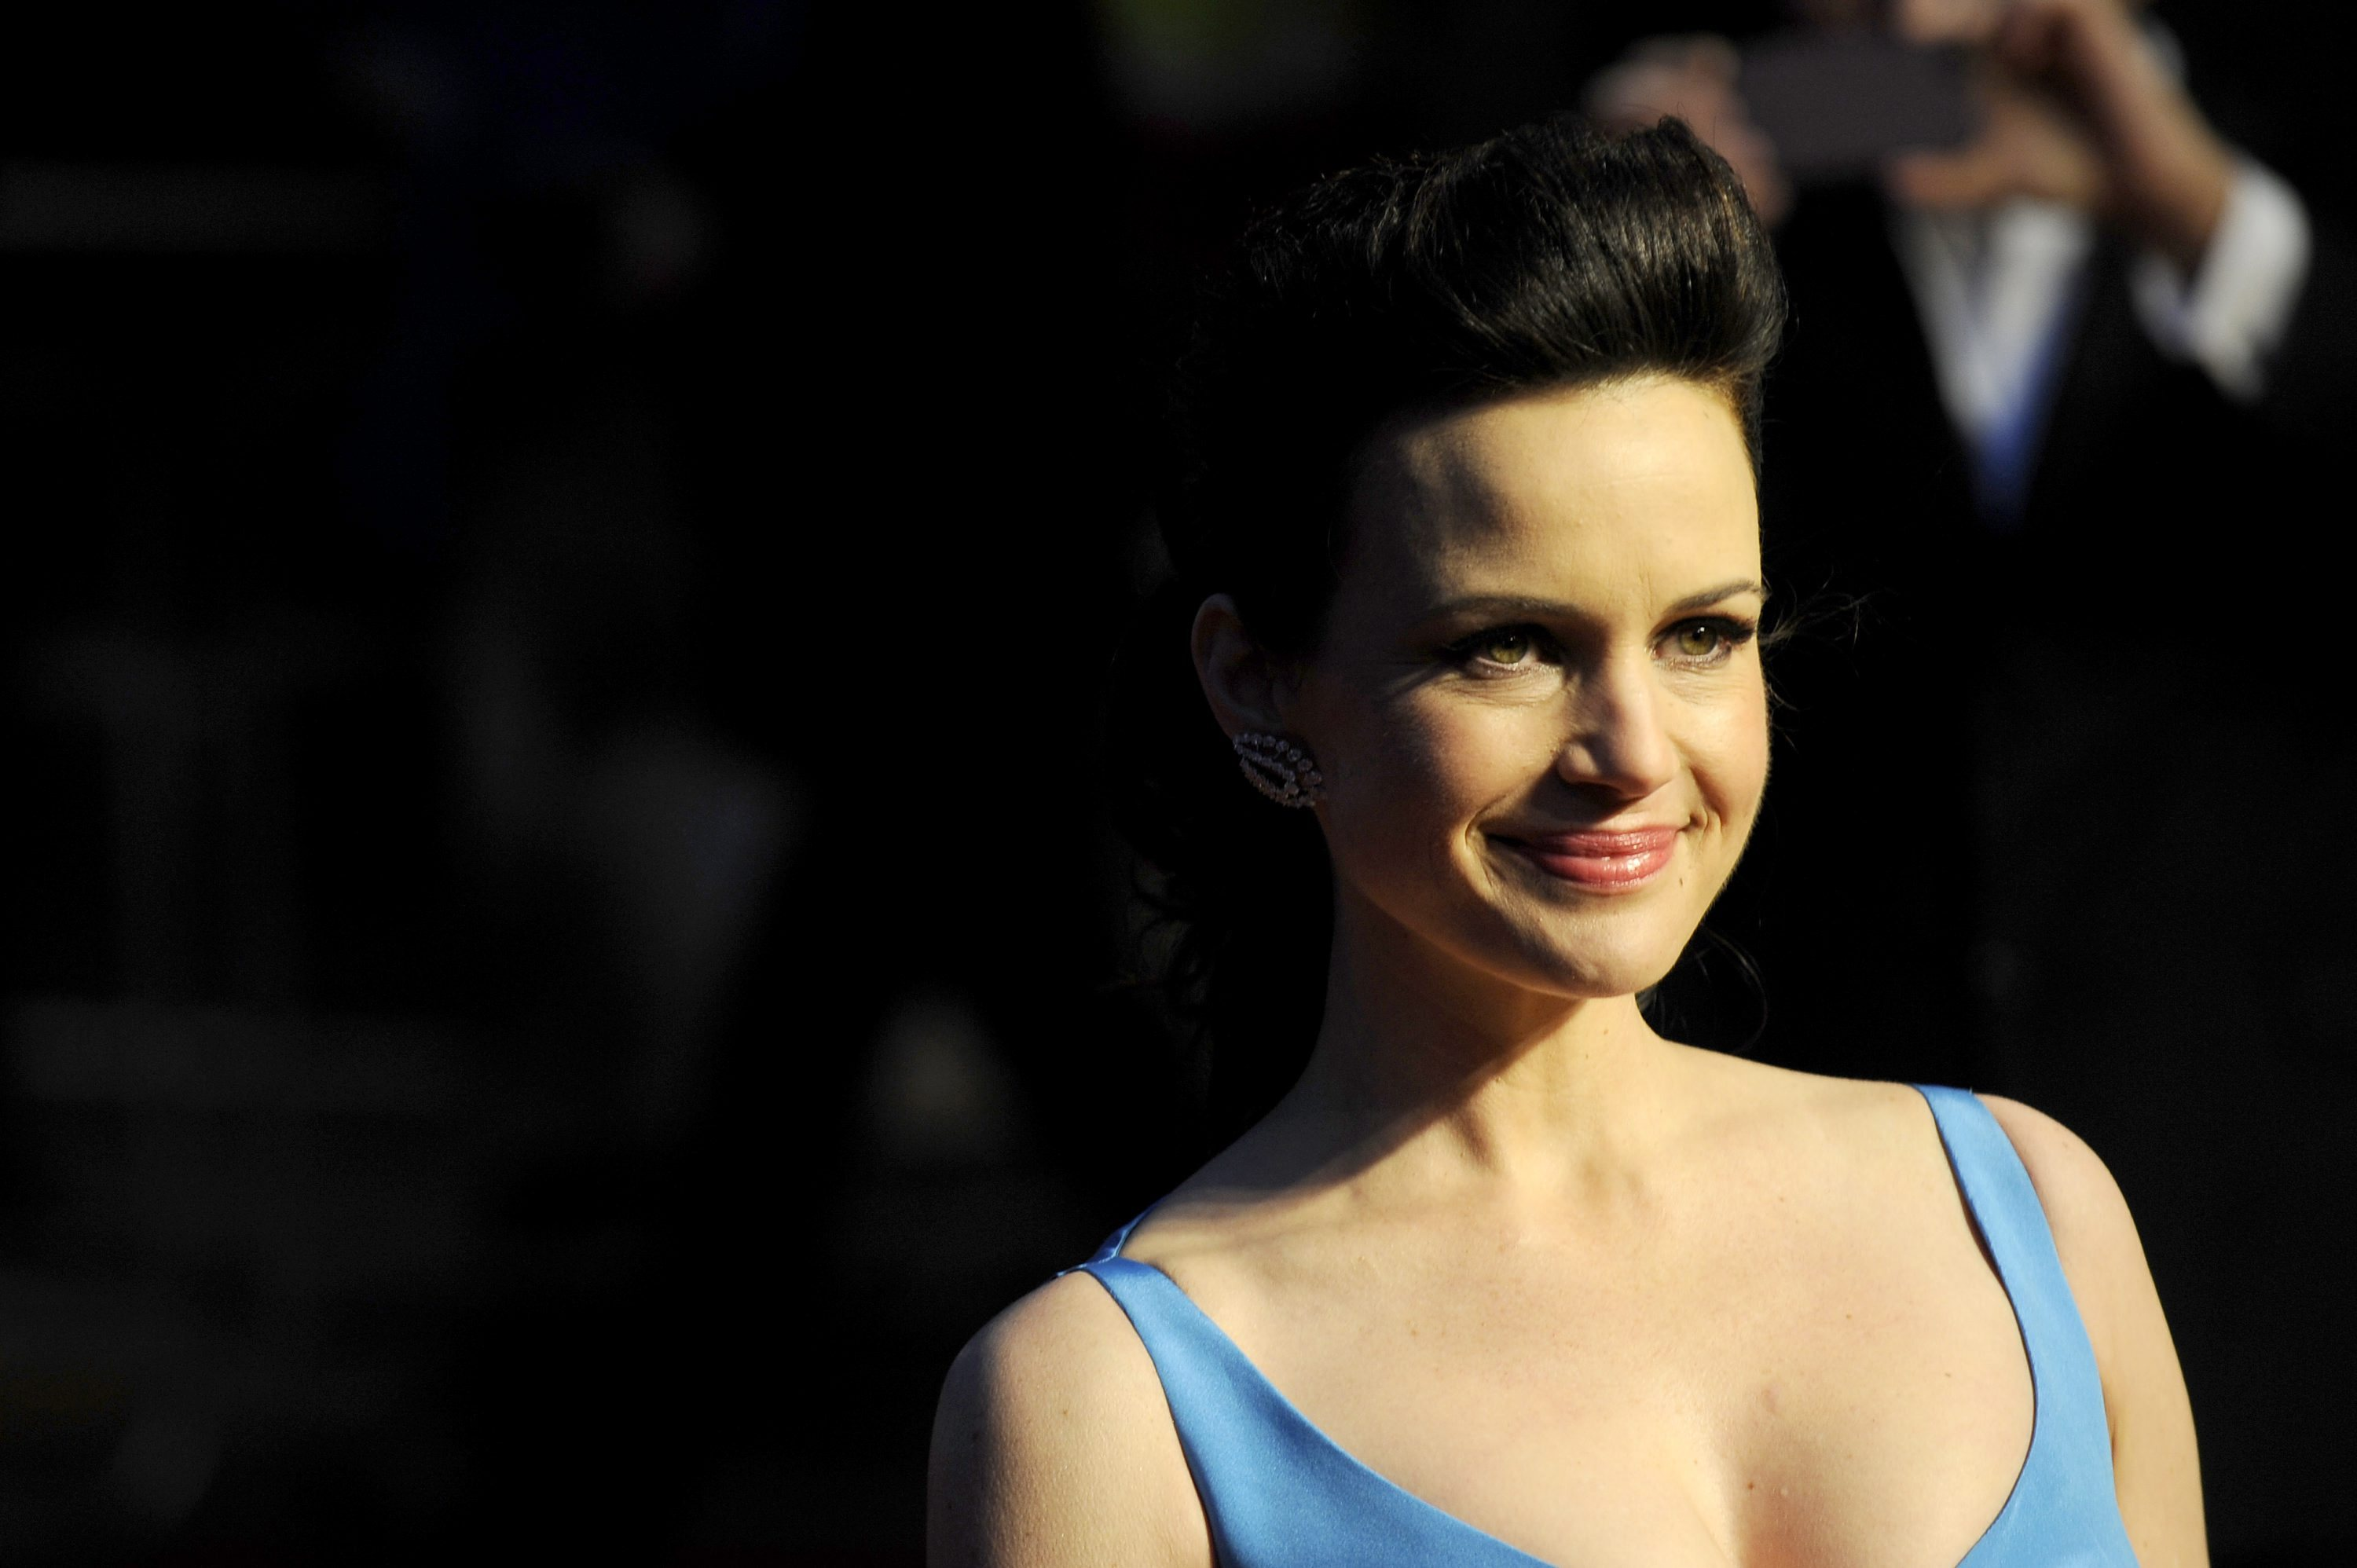 Celebrity Carla Gugino nudes (23 foto and video), Sexy, Fappening, Boobs, braless 2018